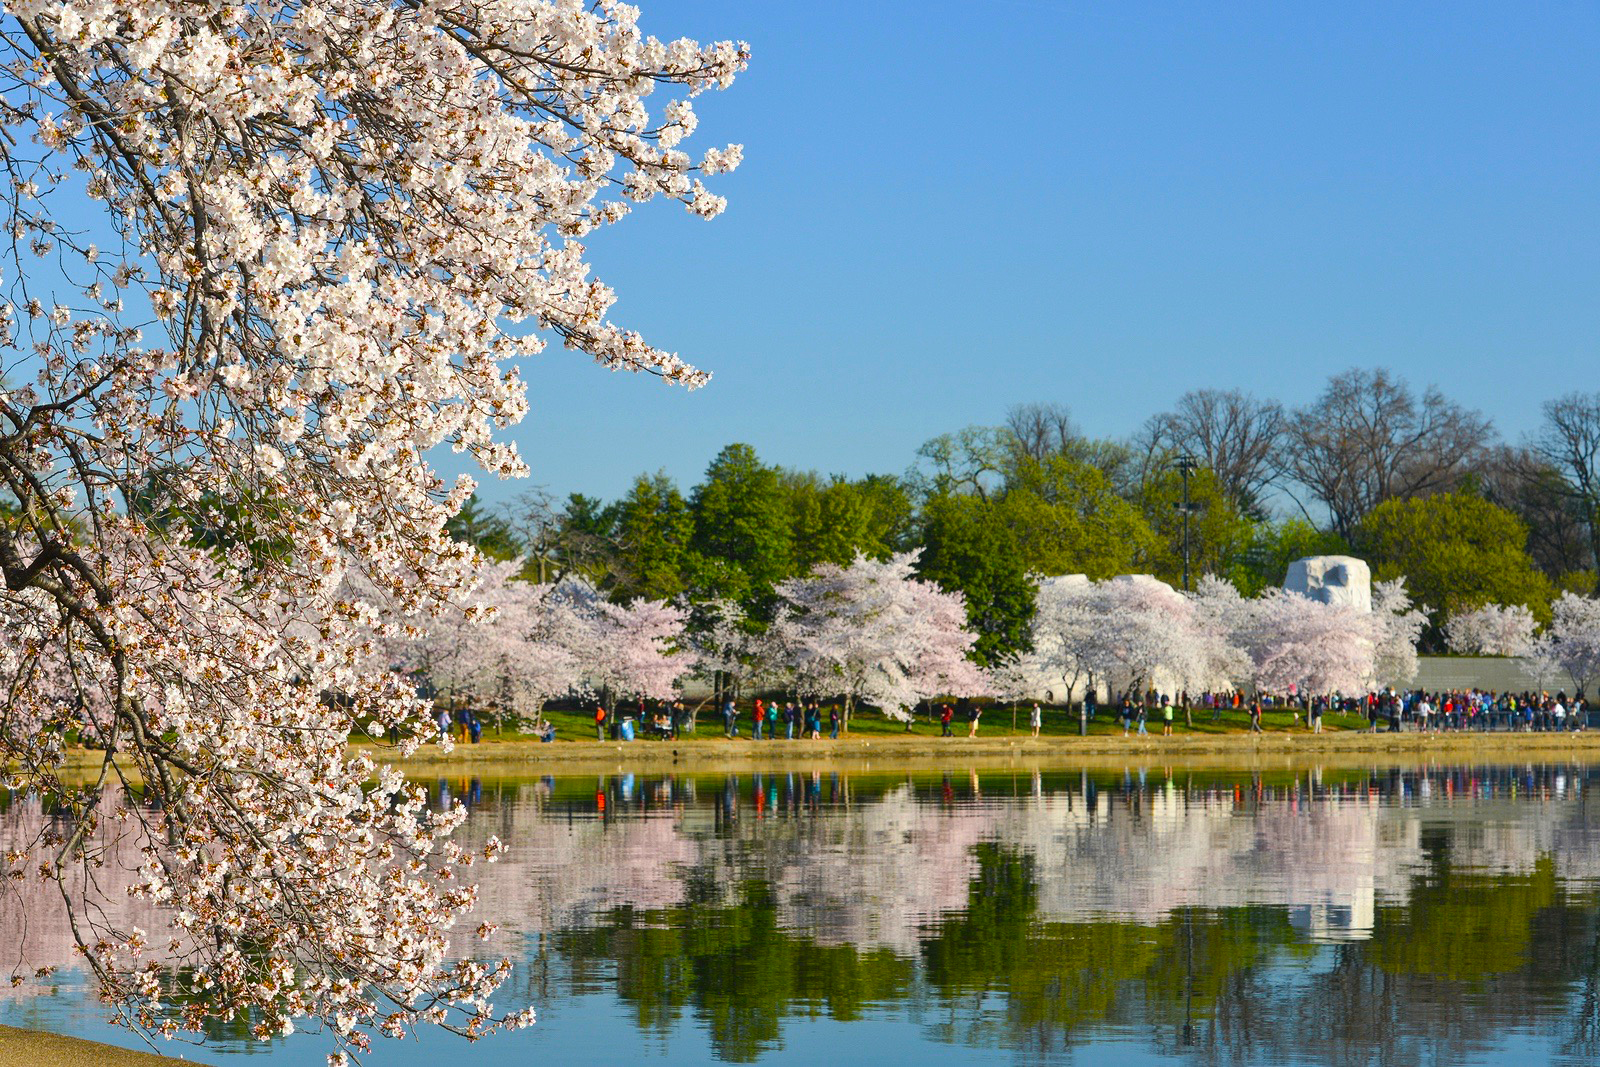 The Cherry Blossom Festival in Washington D.C. makes it a great city to retire if you love Spring.